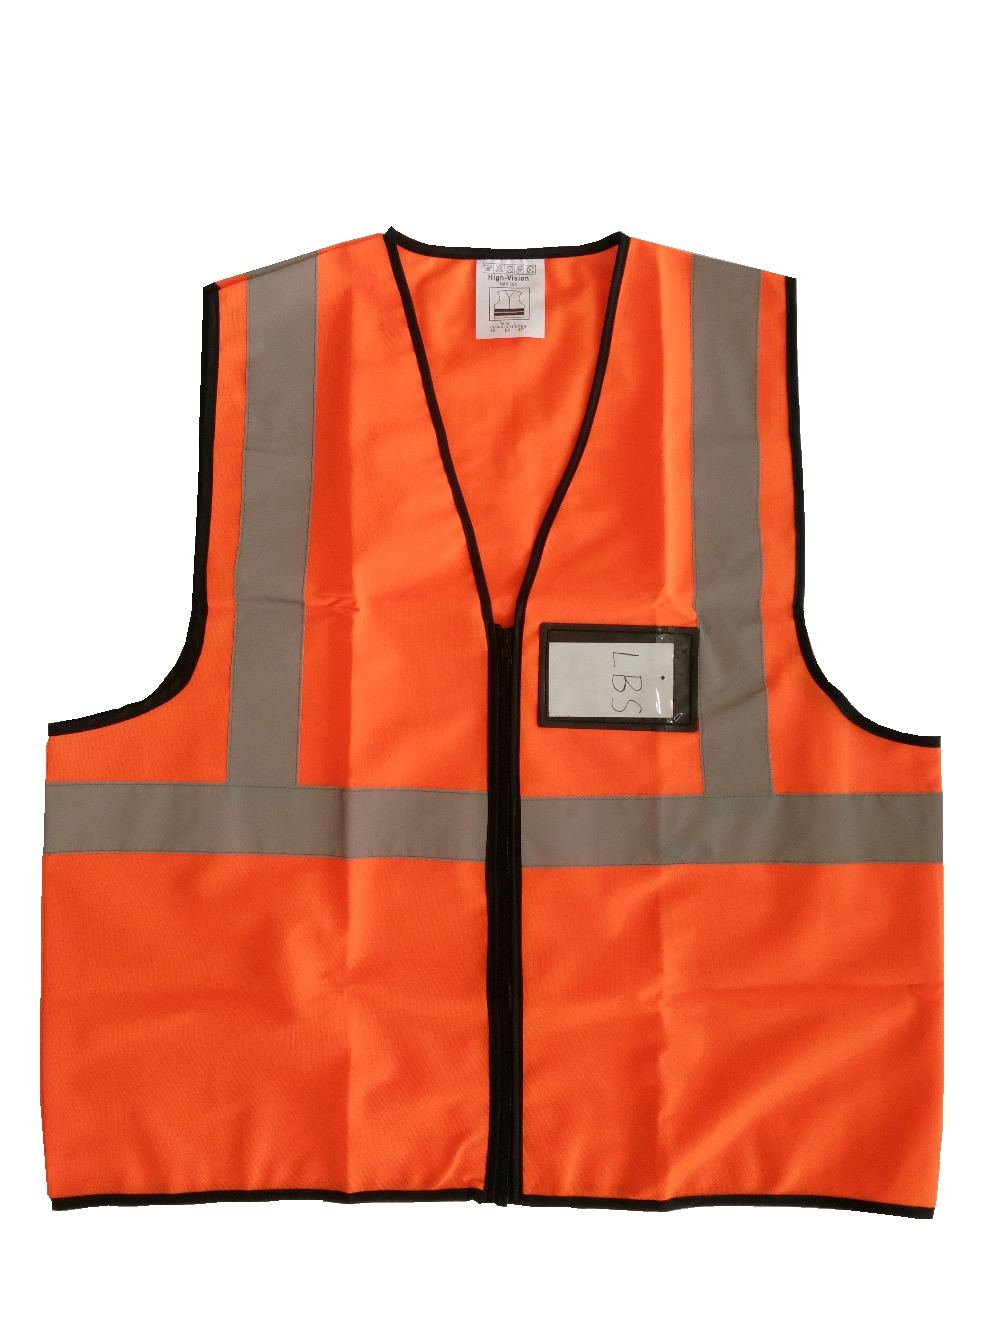 Reflective Vest High Visibility Safety Vest with Pockets Outdoor fluorescence yellow high visibility